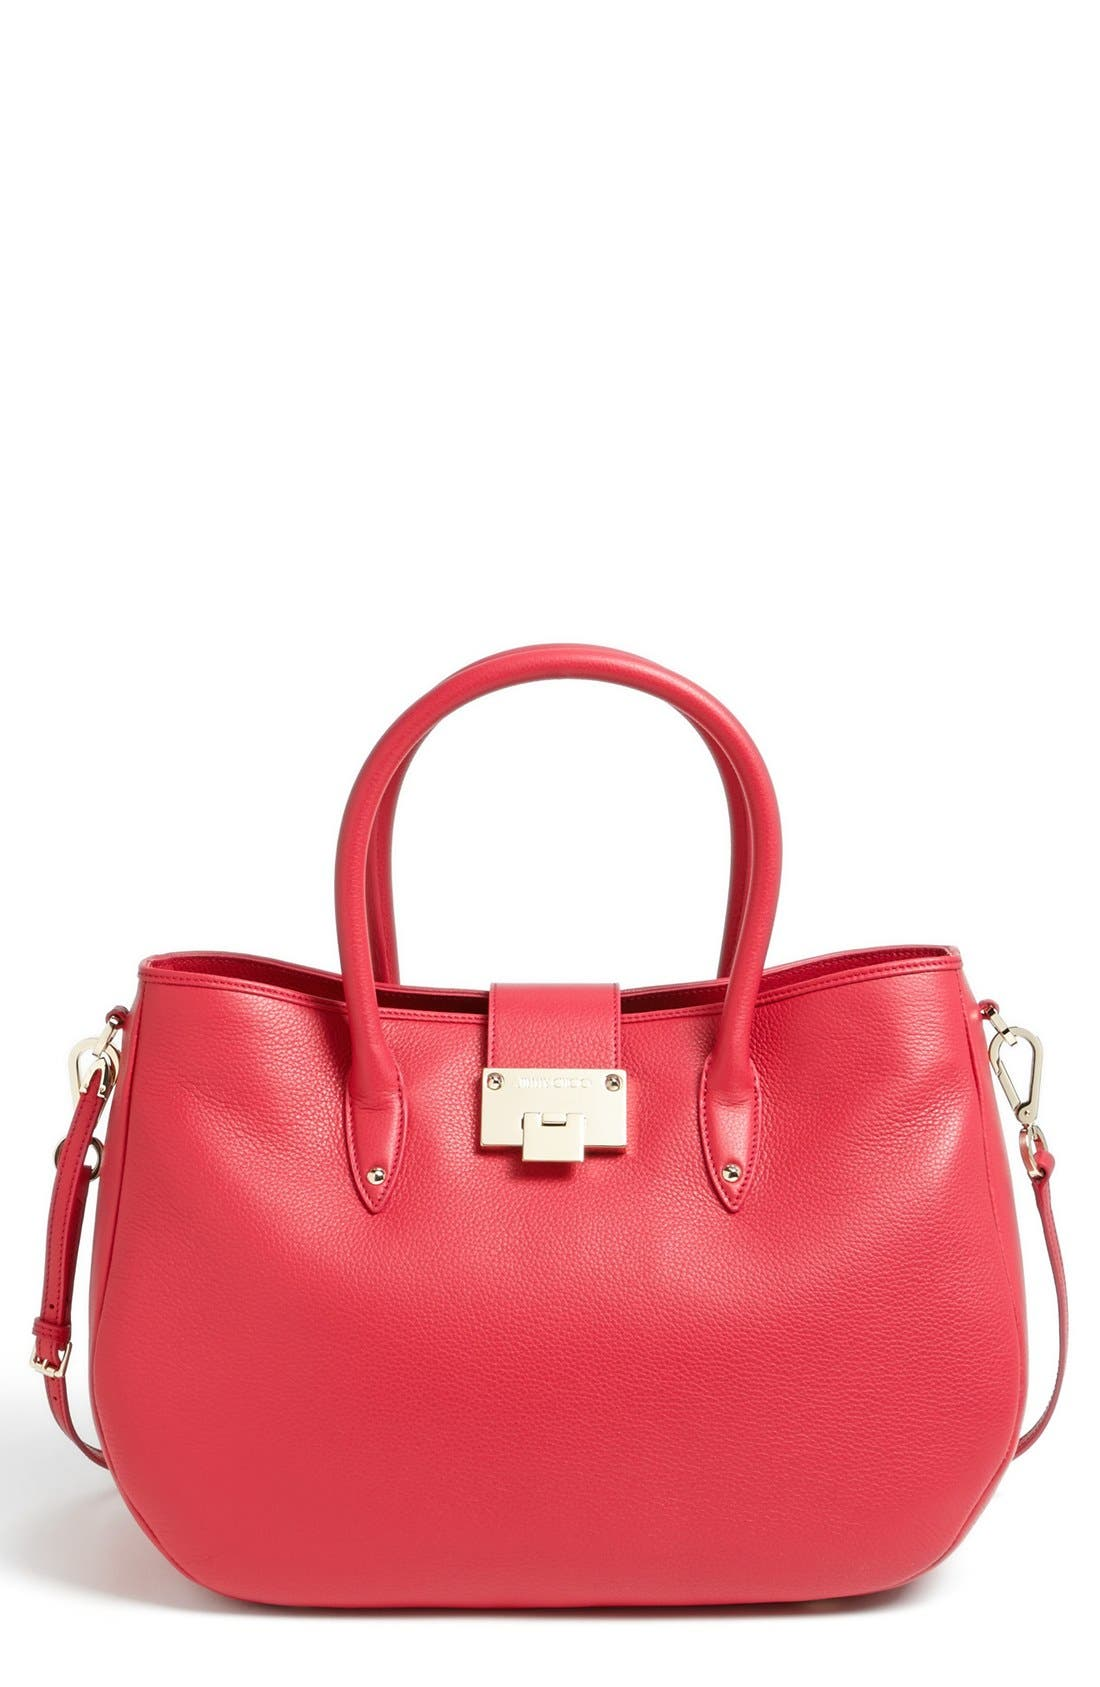 Alternate Image 1 Selected - Jimmy Choo 'Rania' Leather Satchel